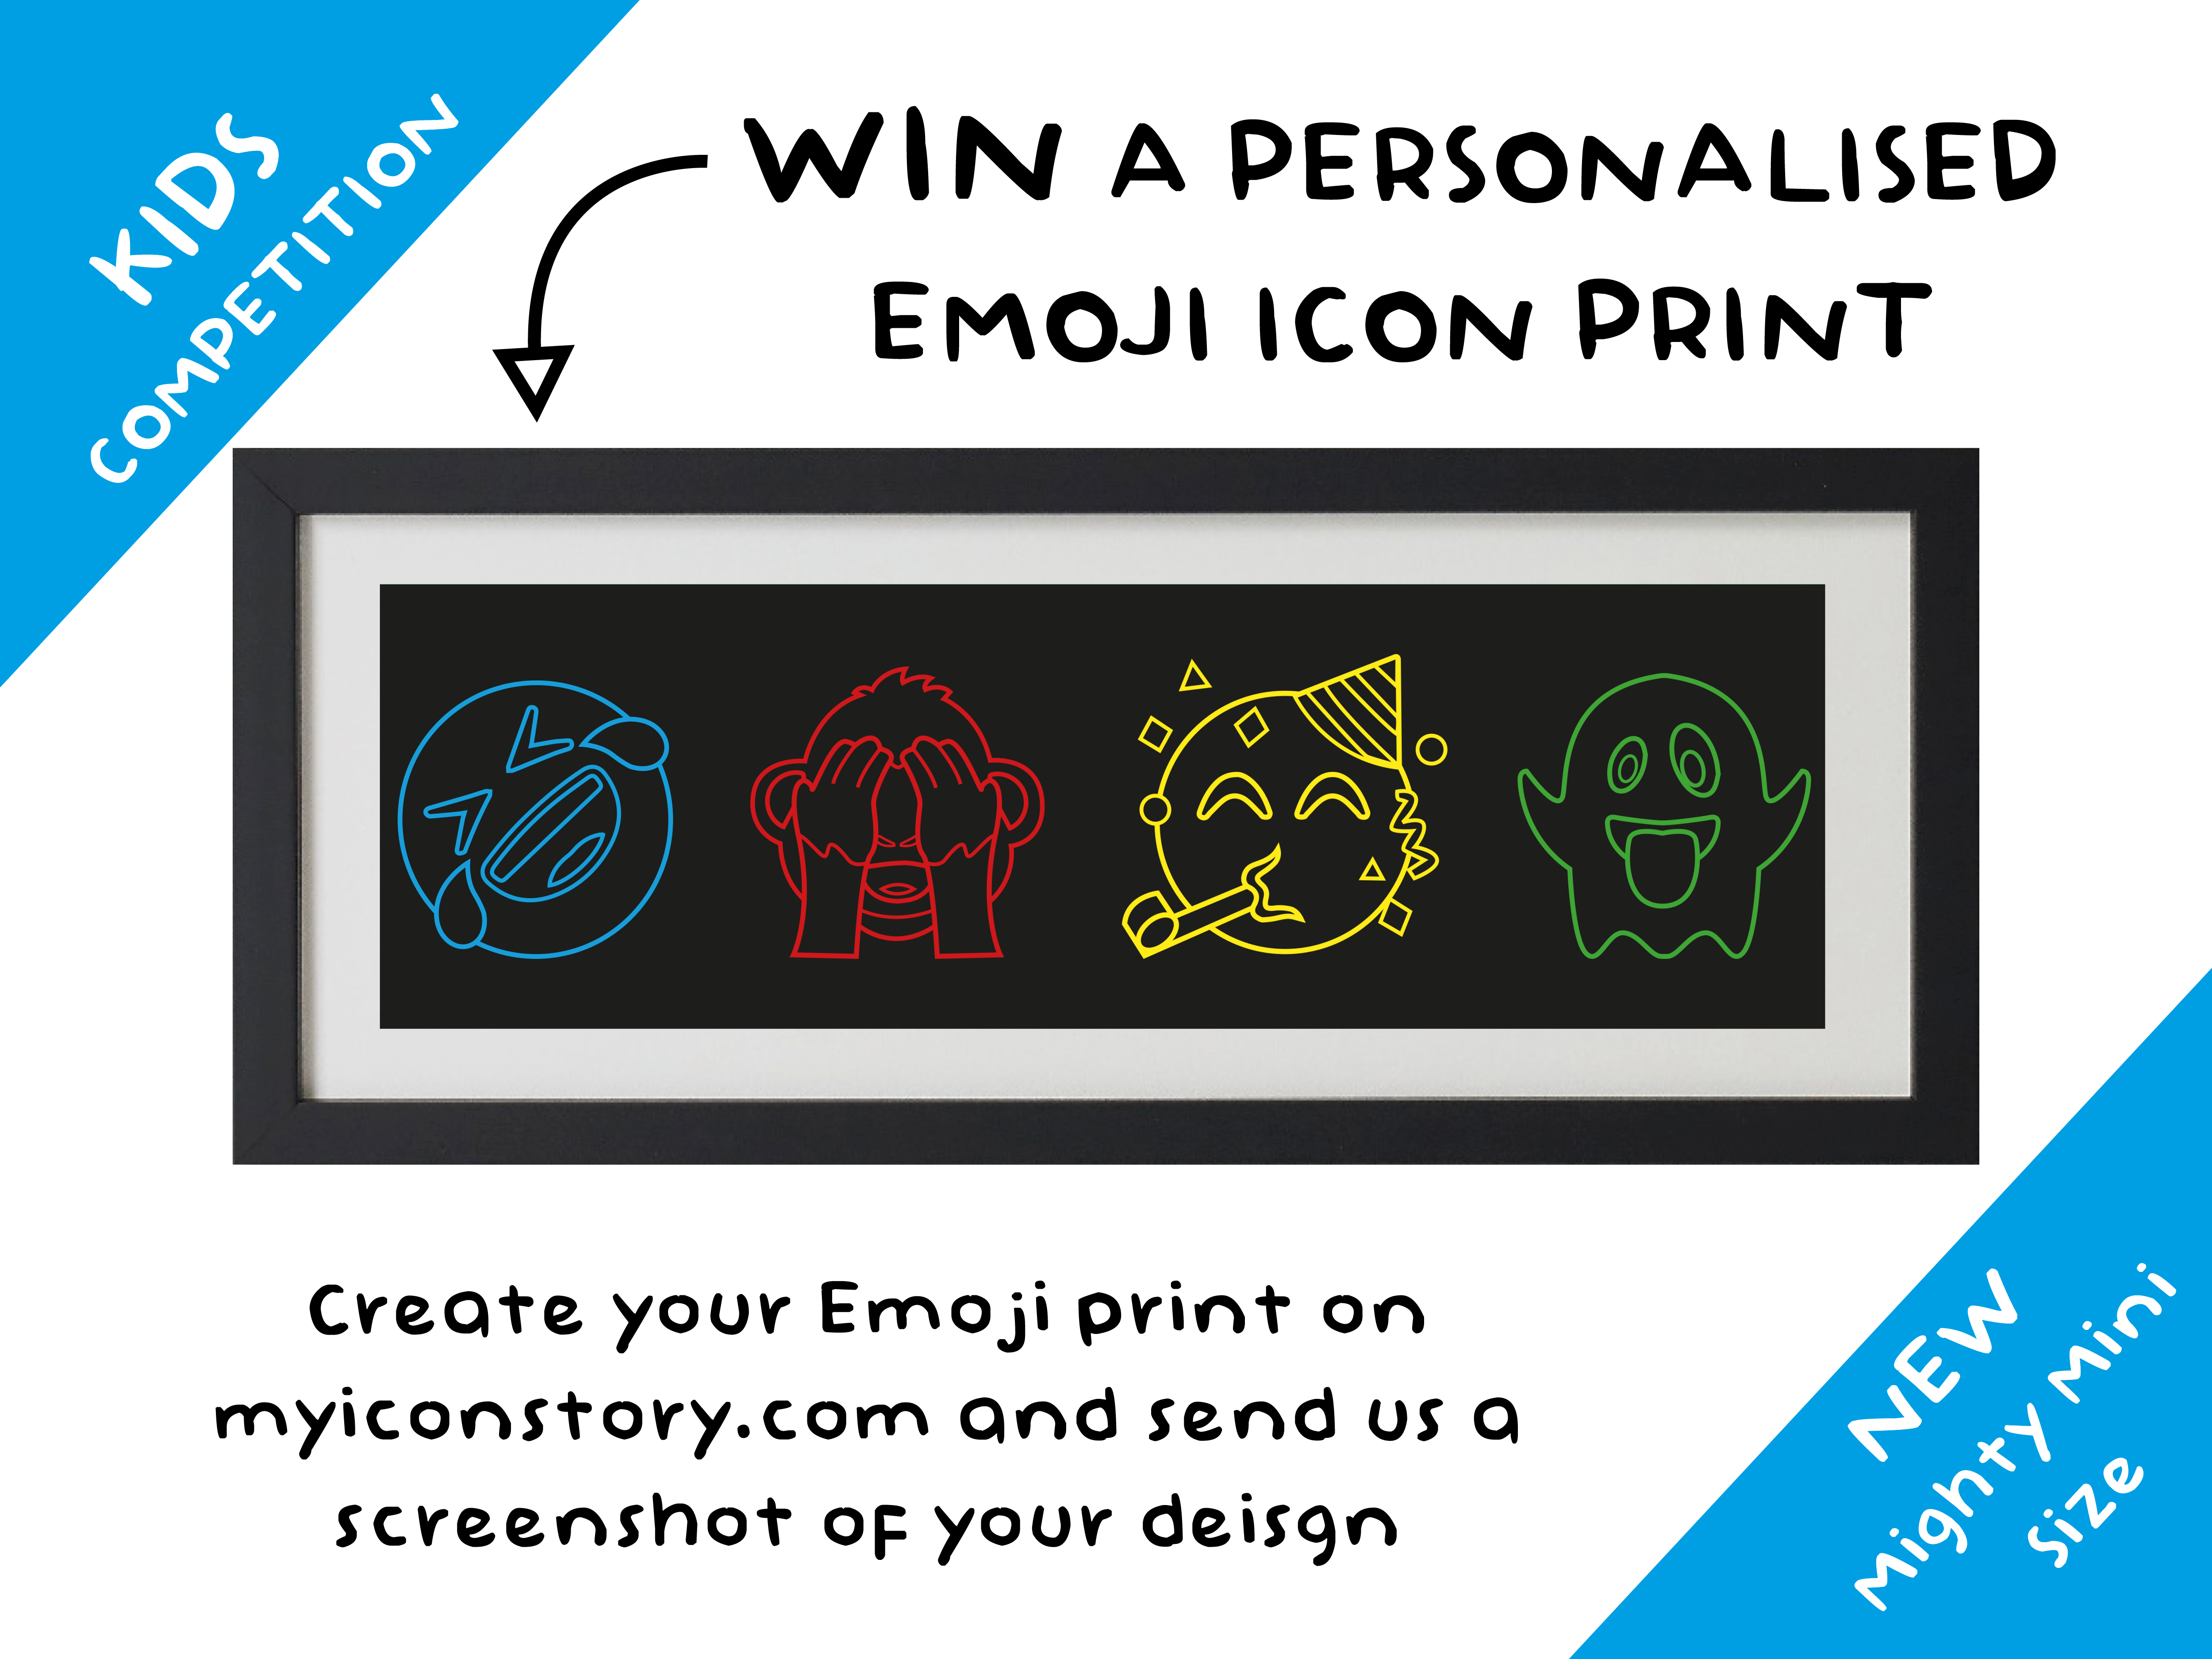 Conmpetition post with emoji print design